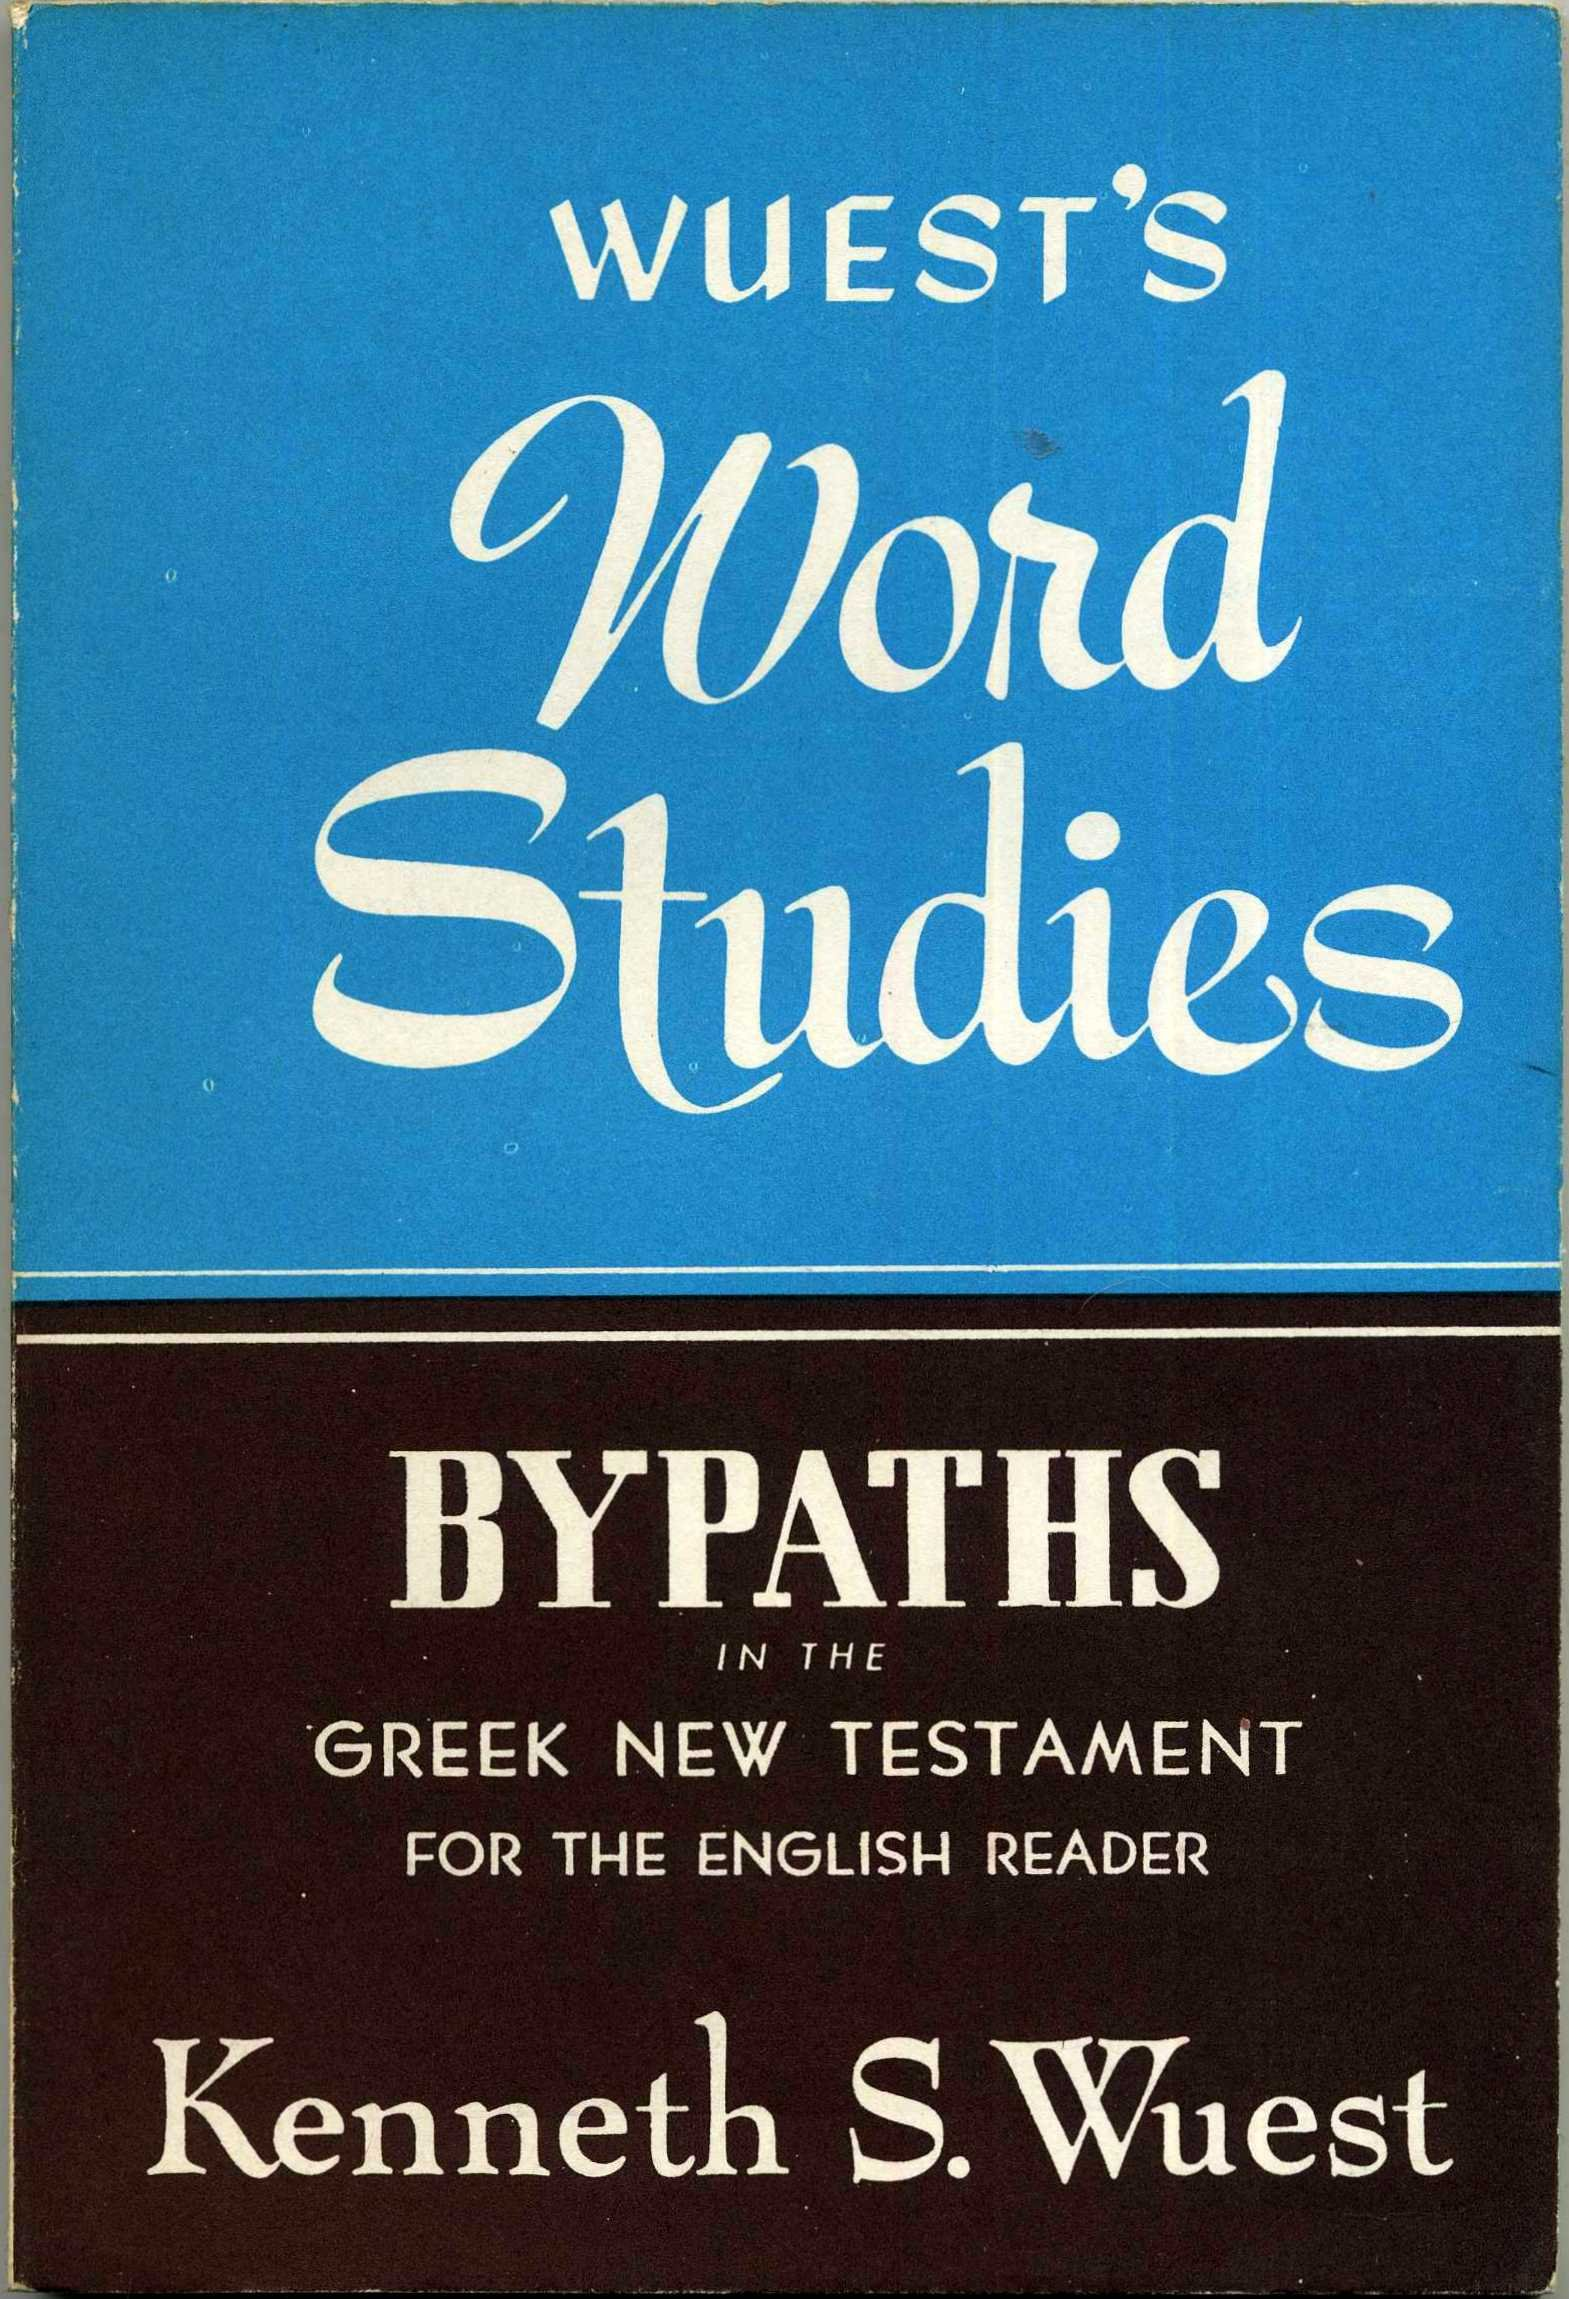 Wuest S Word Studies Bypaths In The Greek New Testament For English Readers Kenneth S Wuest 9780802813183 Amazon Com Books